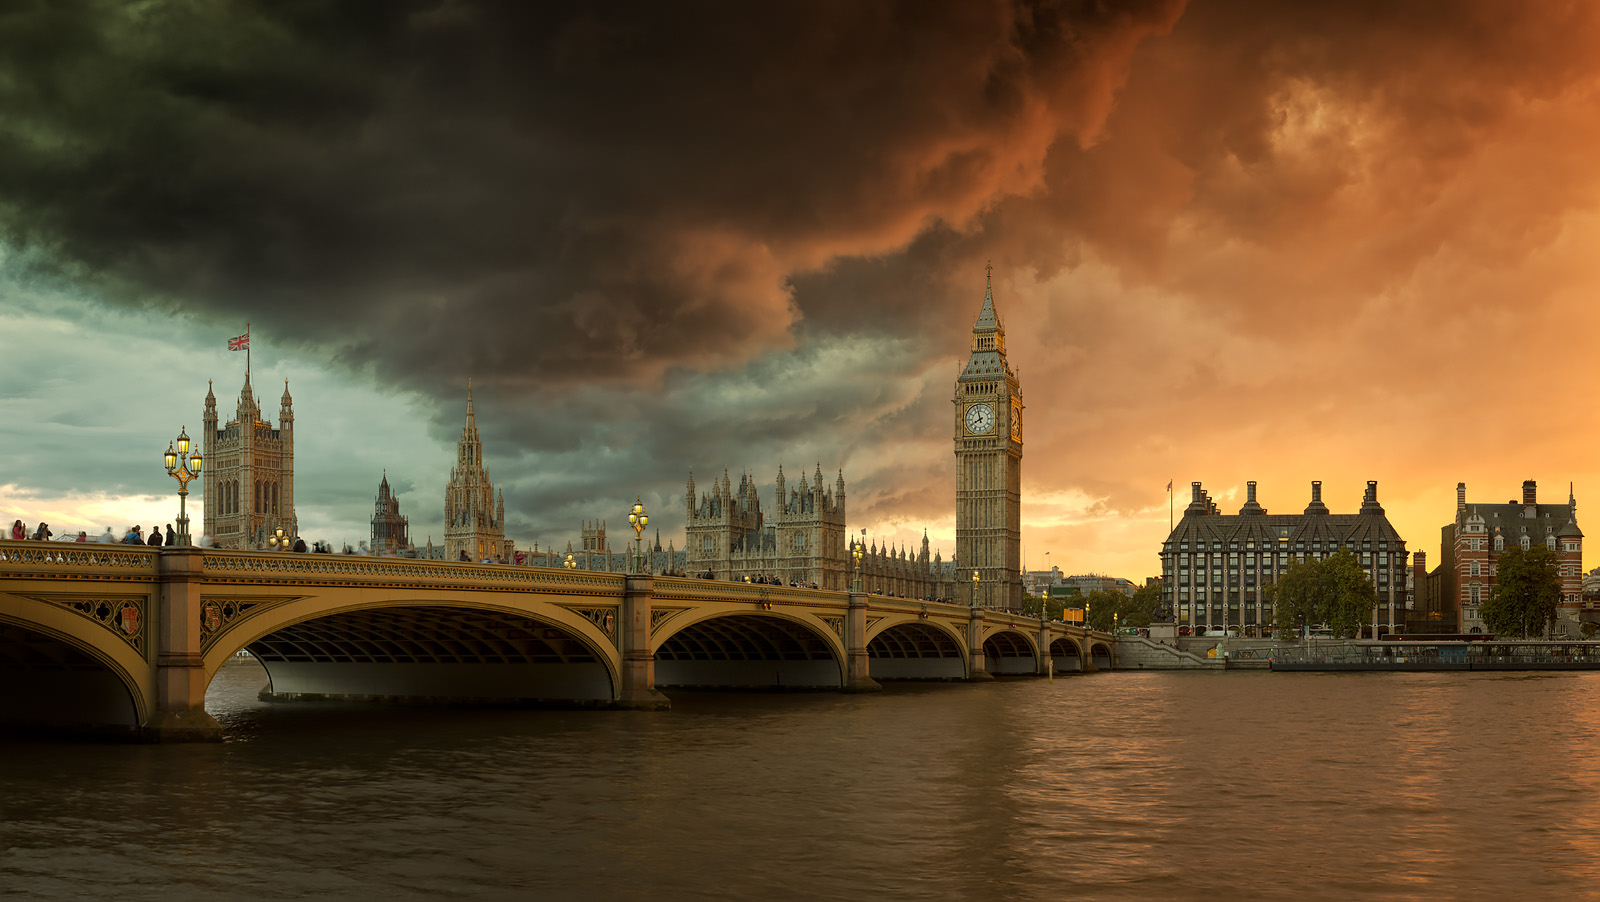 Palace of Westminster Acrylic - London Fine Art Photo